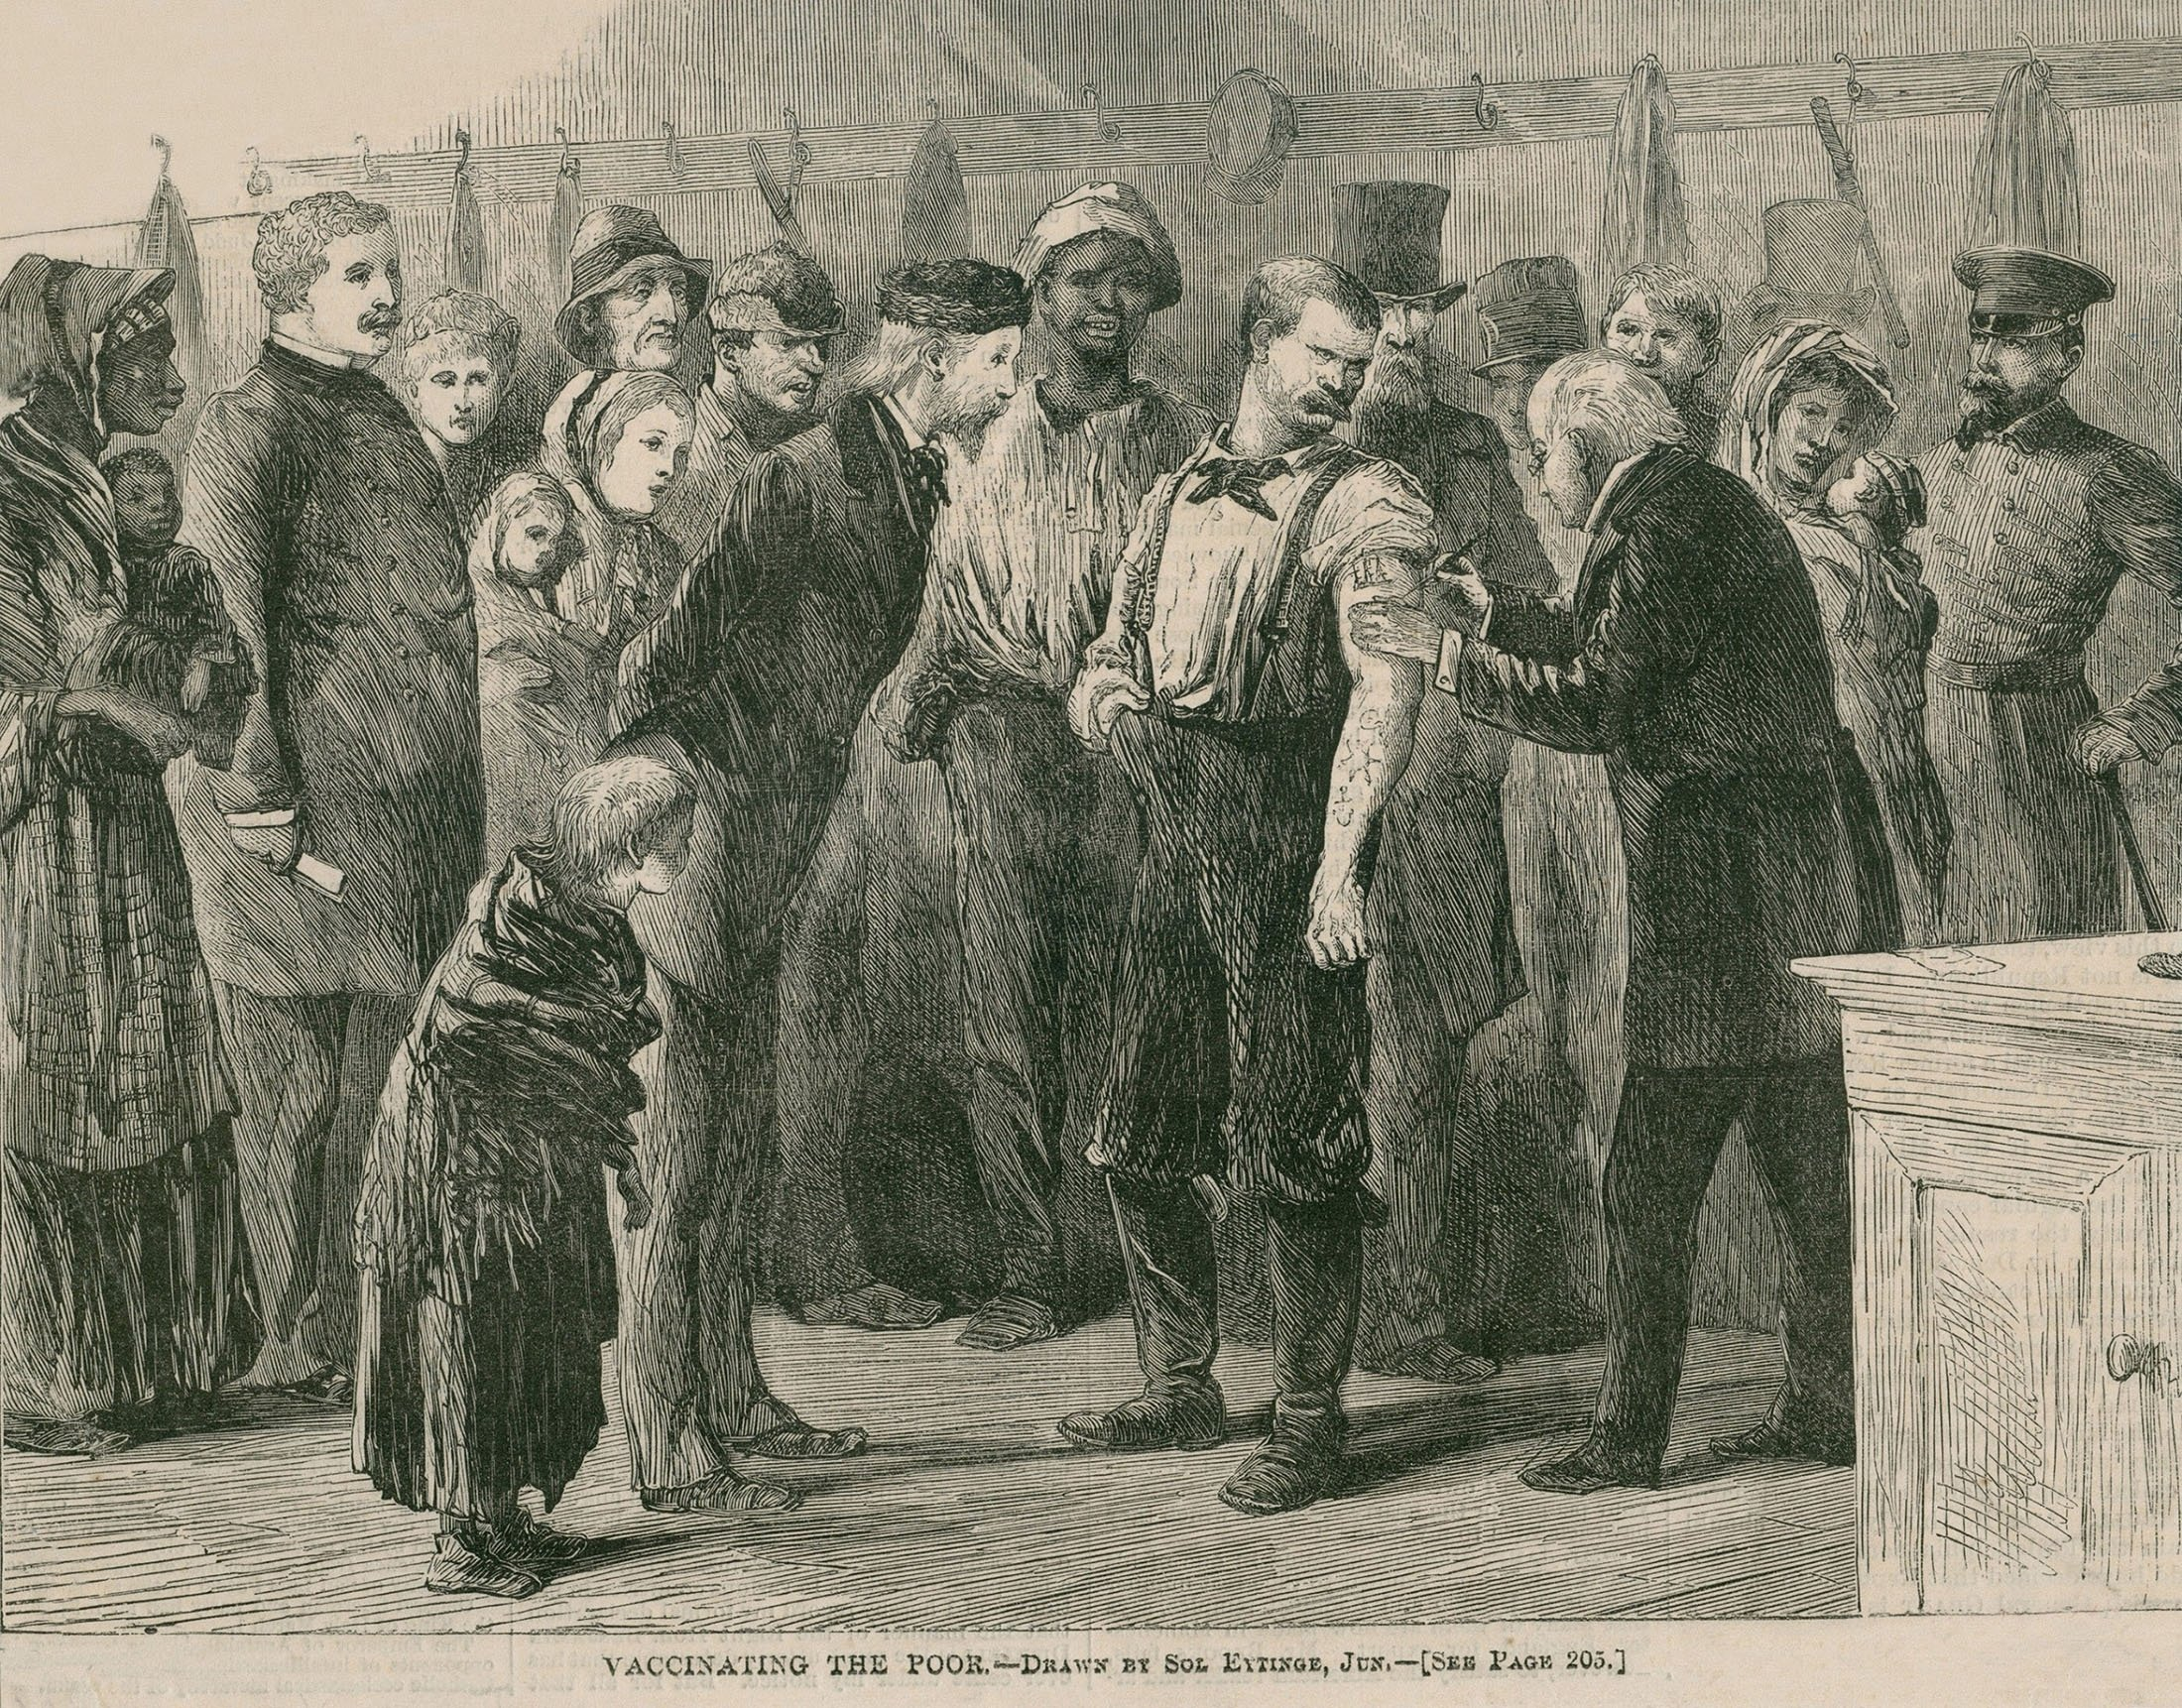 Vaccinating the poor of New York City against smallpox in 1872. (Shutterstock Photo)